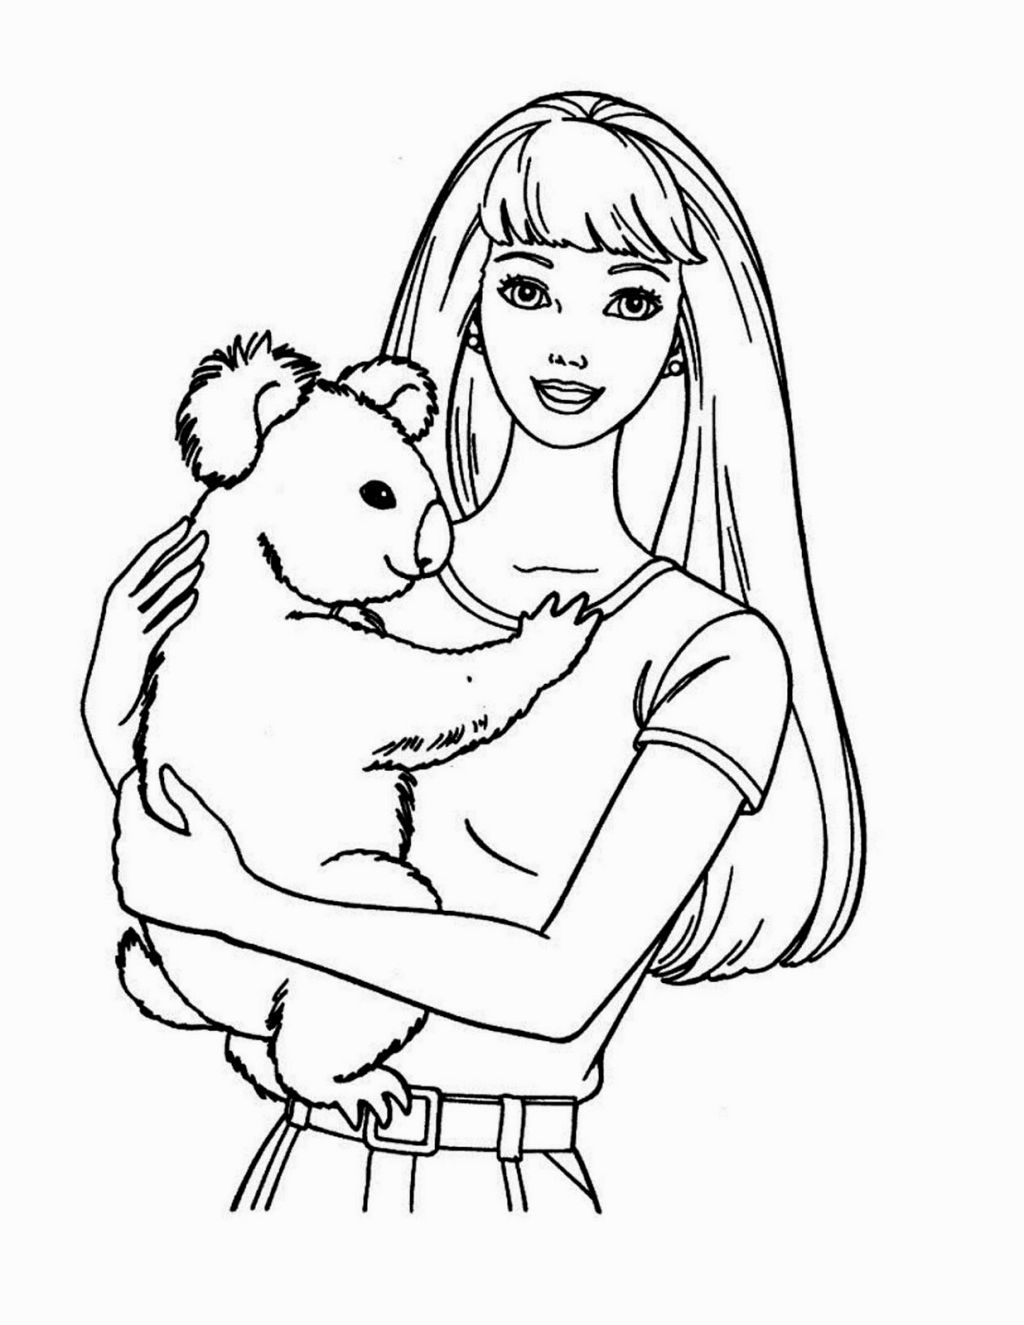 Doll Palace Coloring Pages | Coloring Pages | Pinterest | Palace and ...